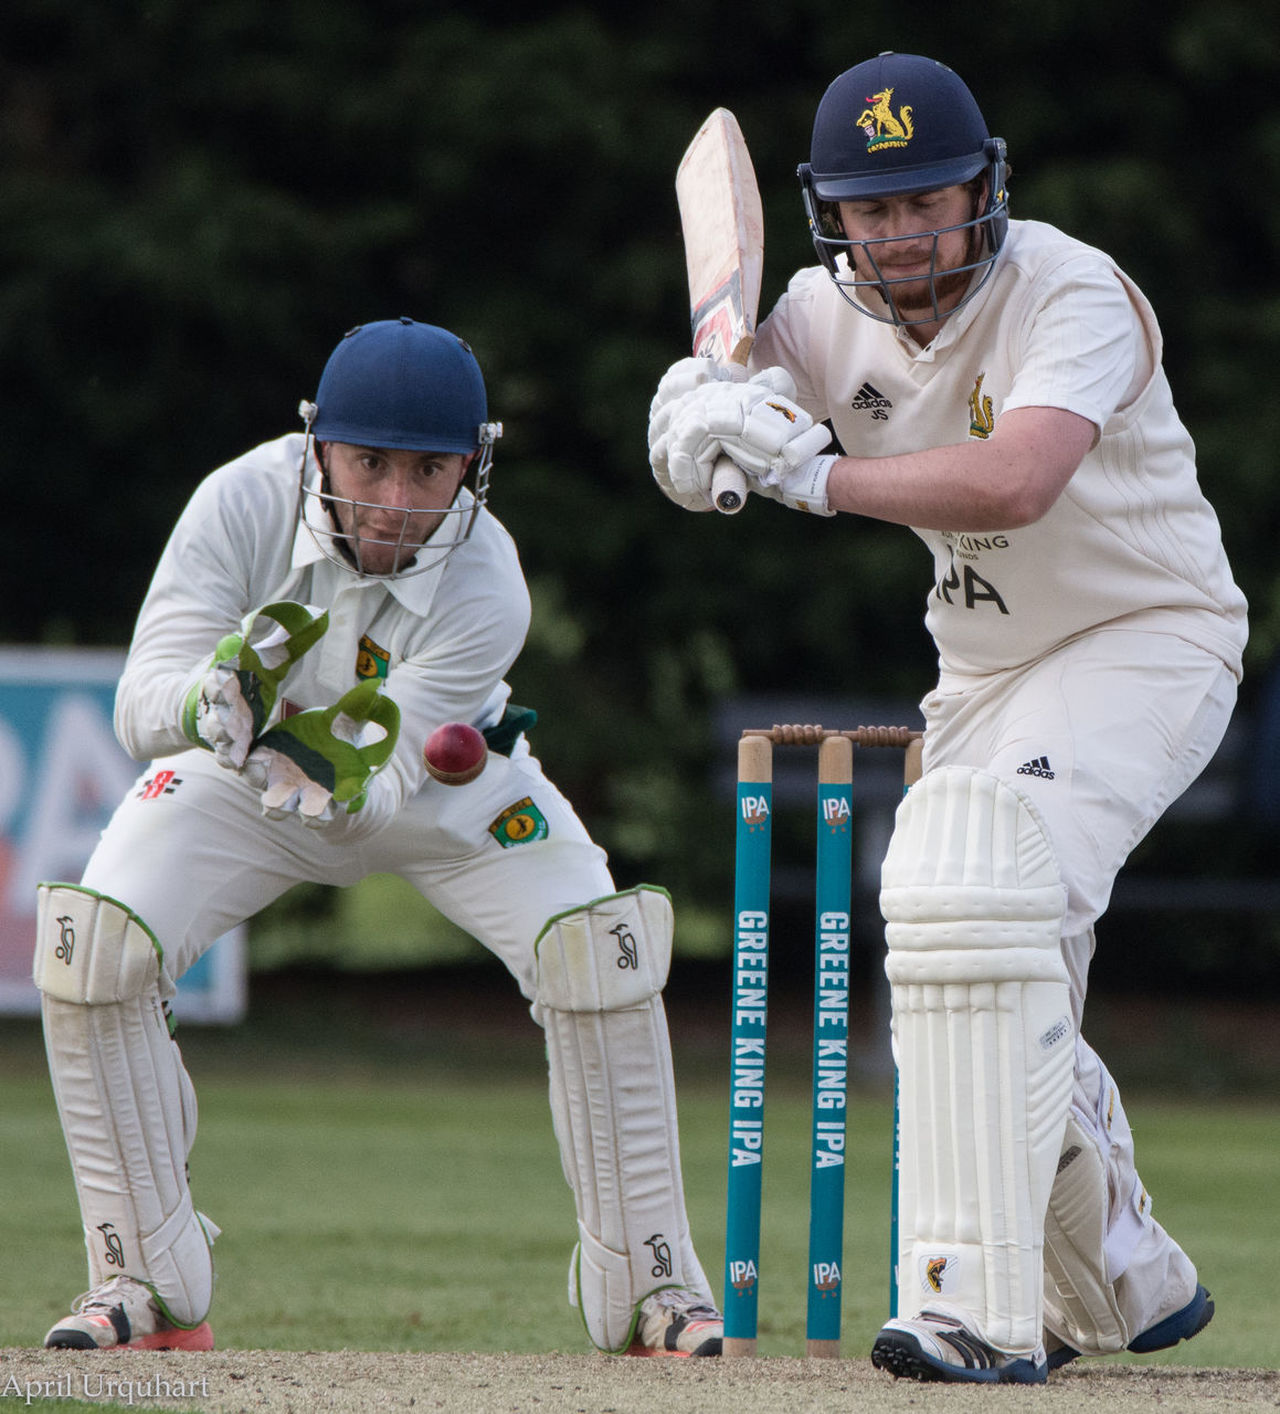 Battle between batsman and wicket keeper Batsman Cricket Cricket Ball Cricket Shot Cricketers Front View Headwear Helmet Leisure Activity Outdoors Playing Protection Protective Workwear Real People Sport Sport Drama Sports Helmet Sports Photography Sportsman Wicket Keeper Young Men